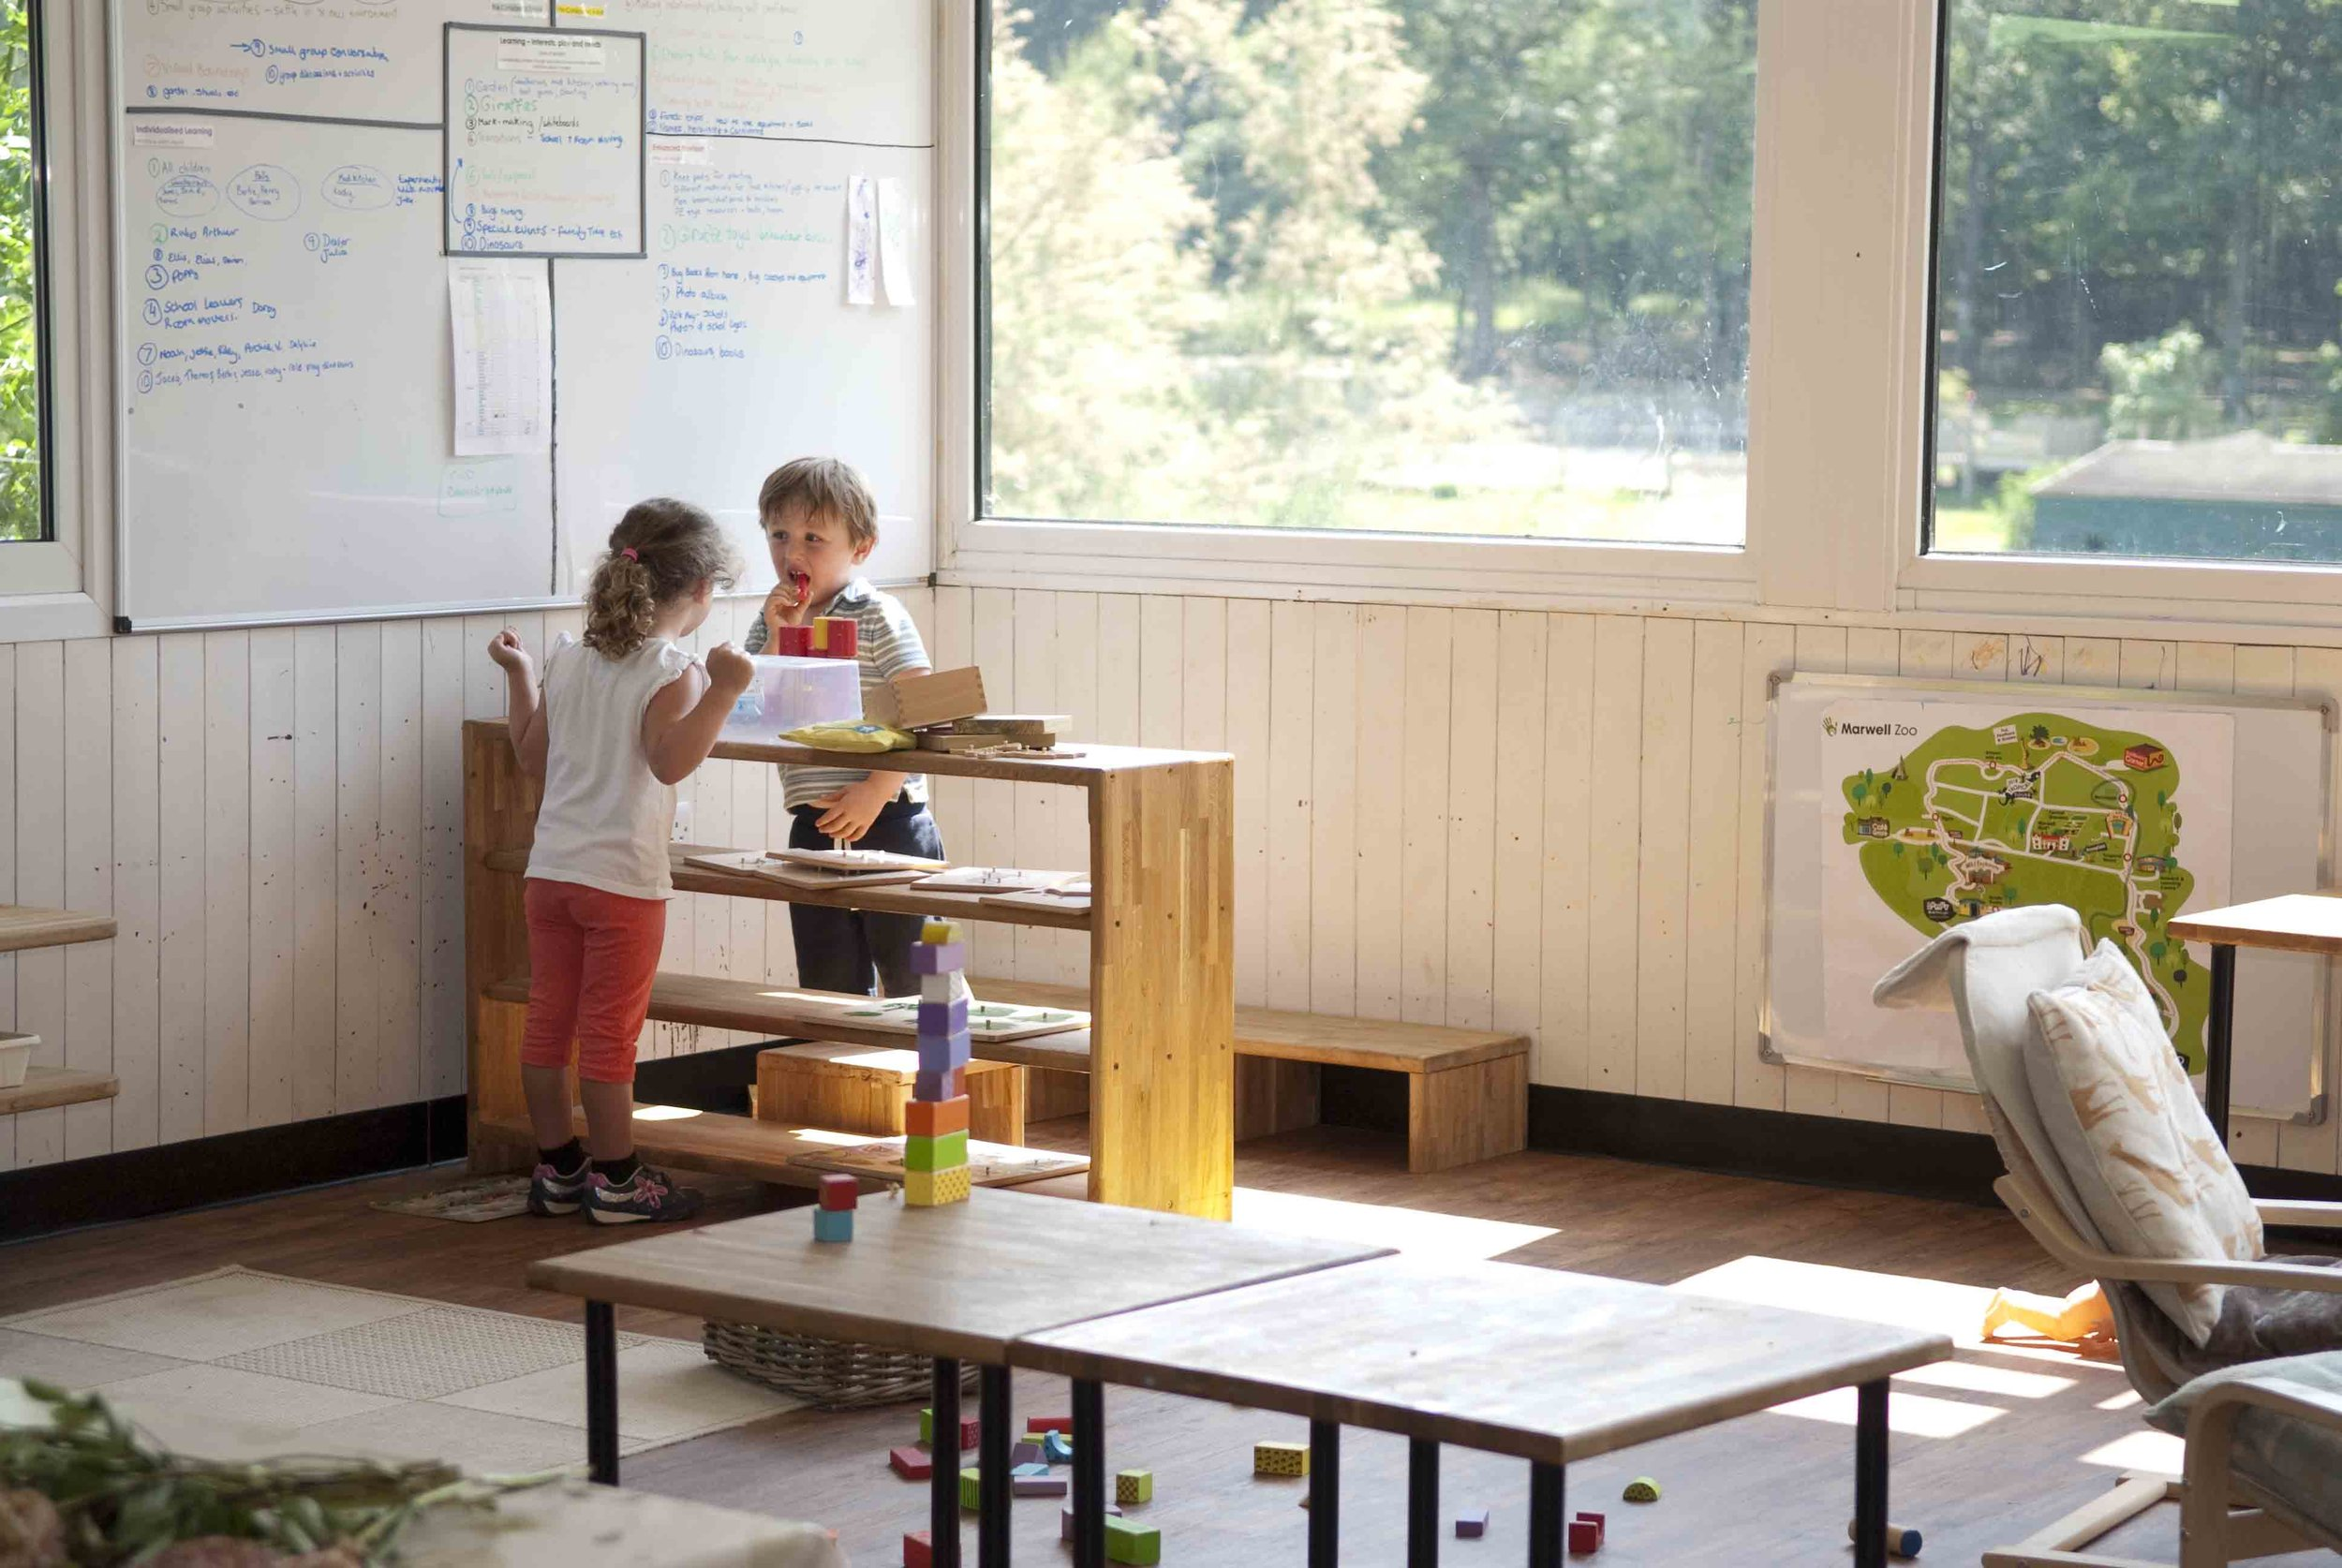 Transitioning from Forest Kindergarten to school